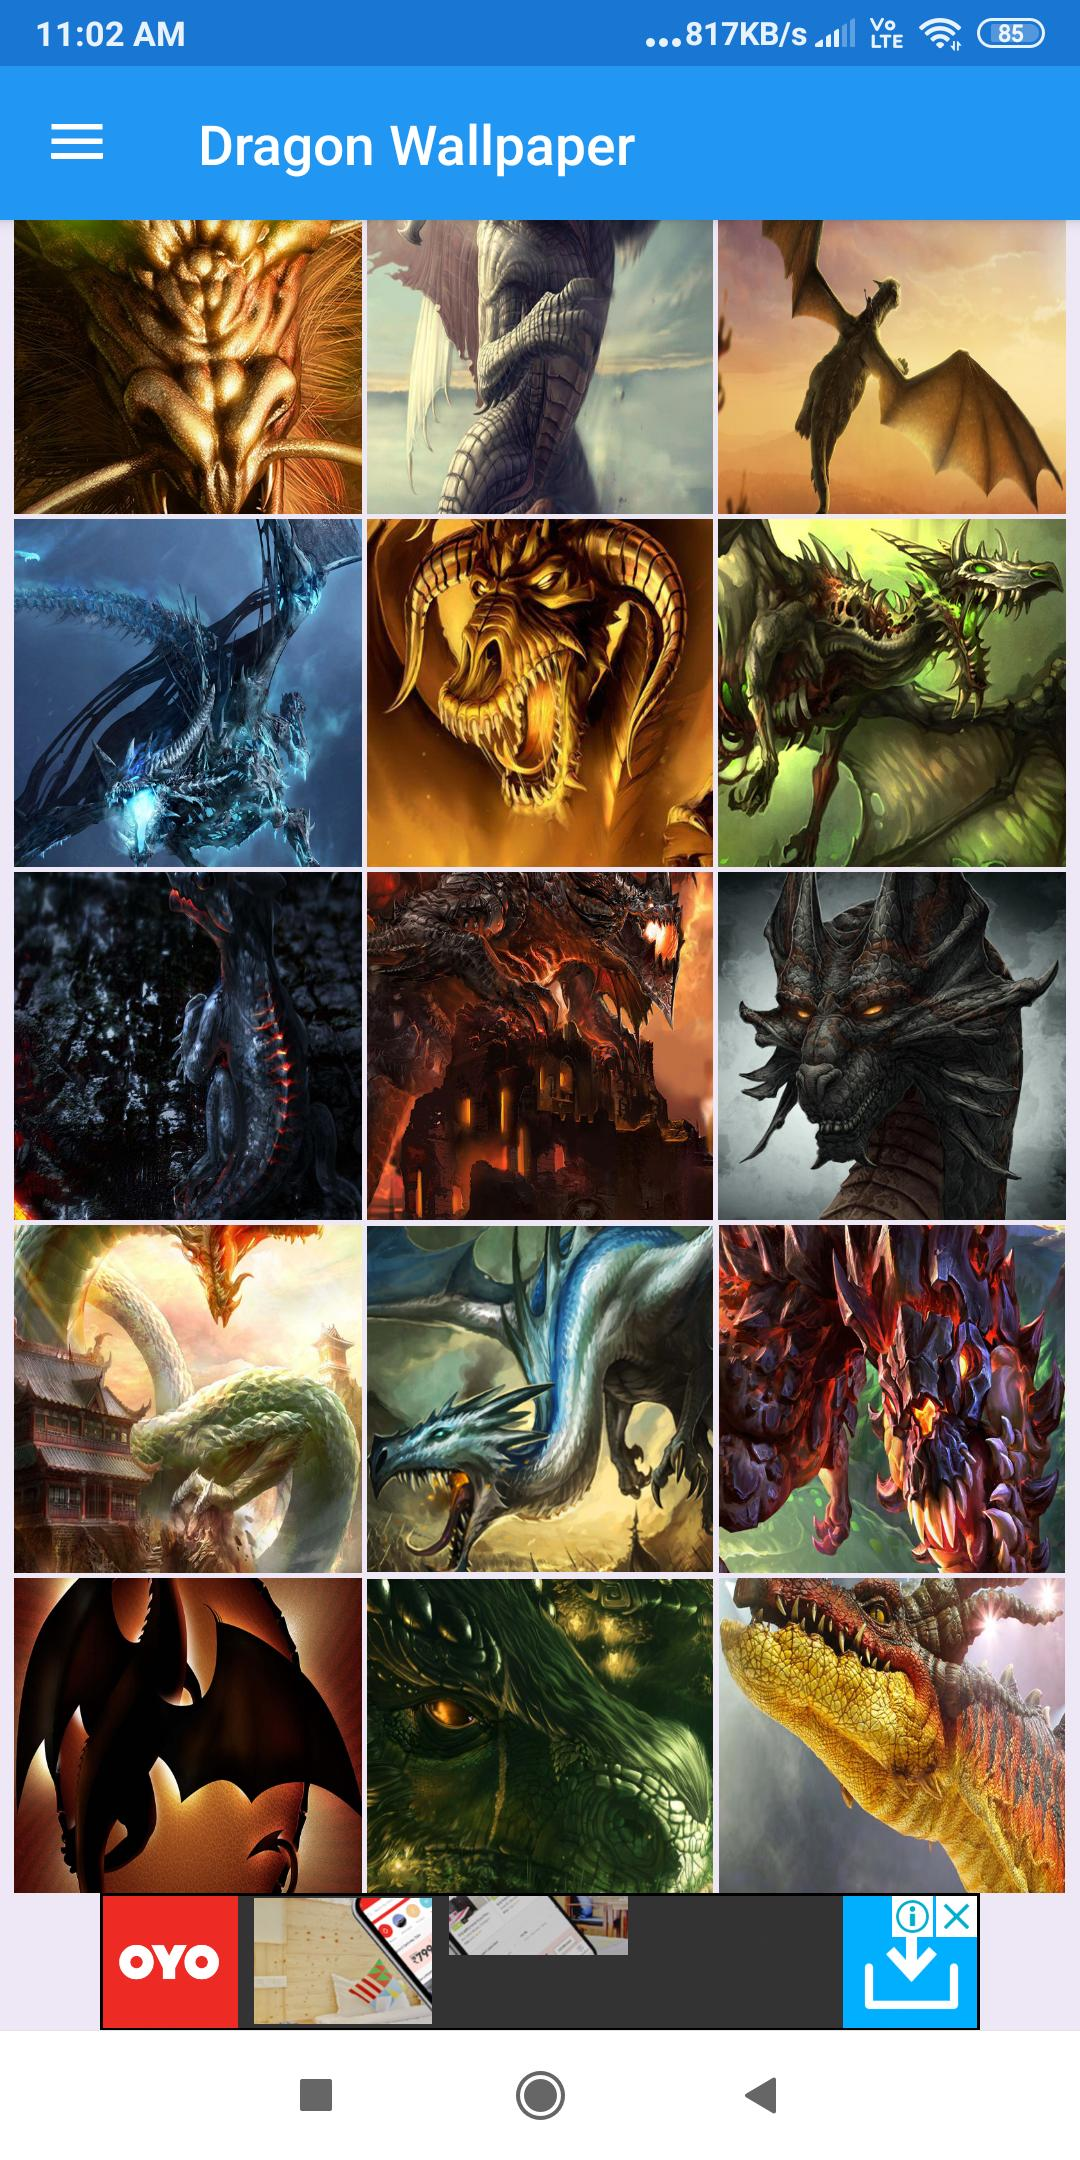 Dragon Wallpaper Hd Images Free Pics Download For Android Apk